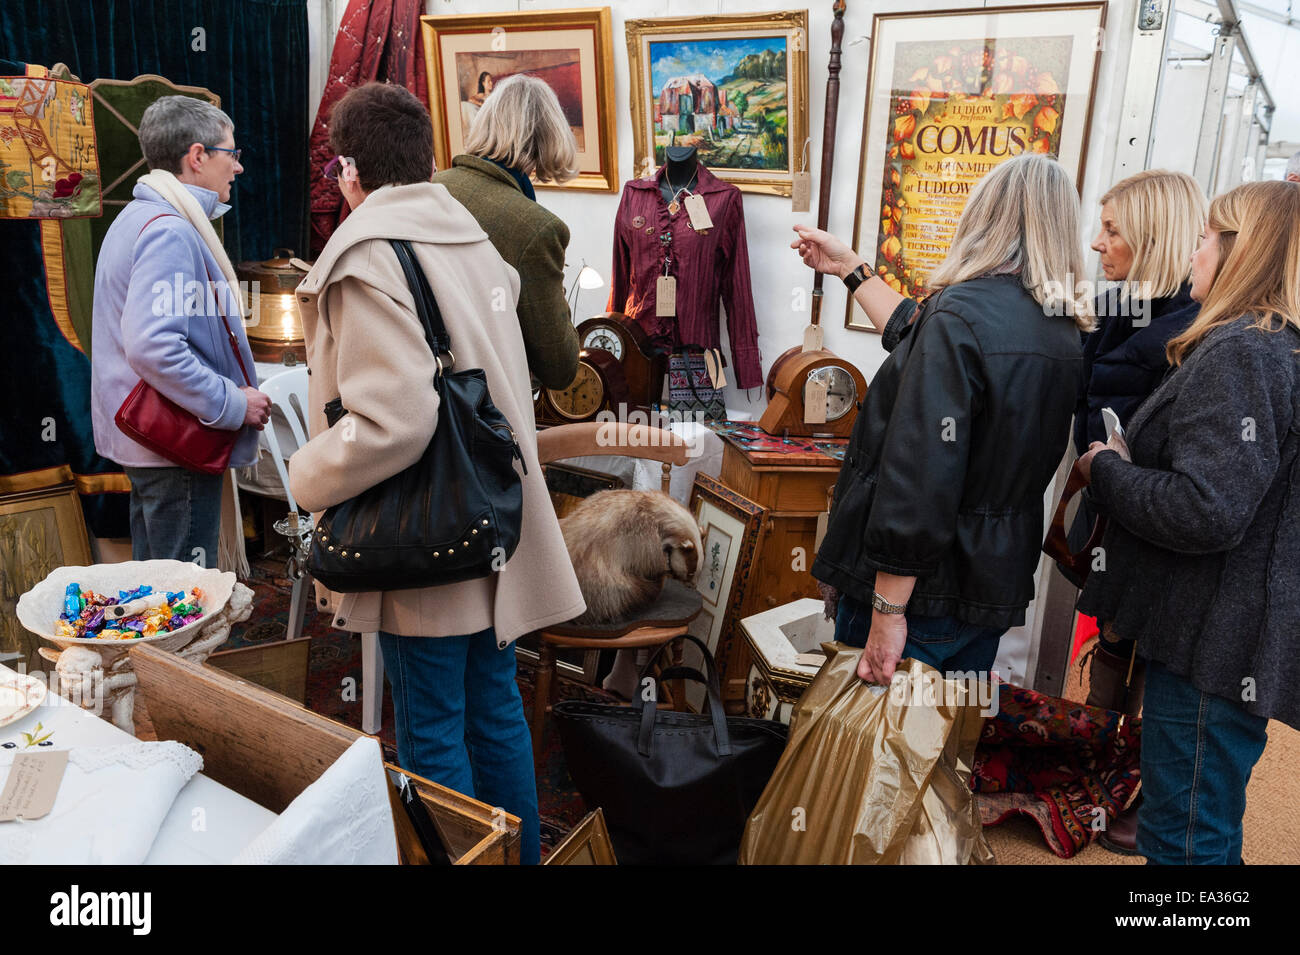 Visitors and dealers inspecting items for sale at a country antiques fair, Herefordshire, UK - Stock Image